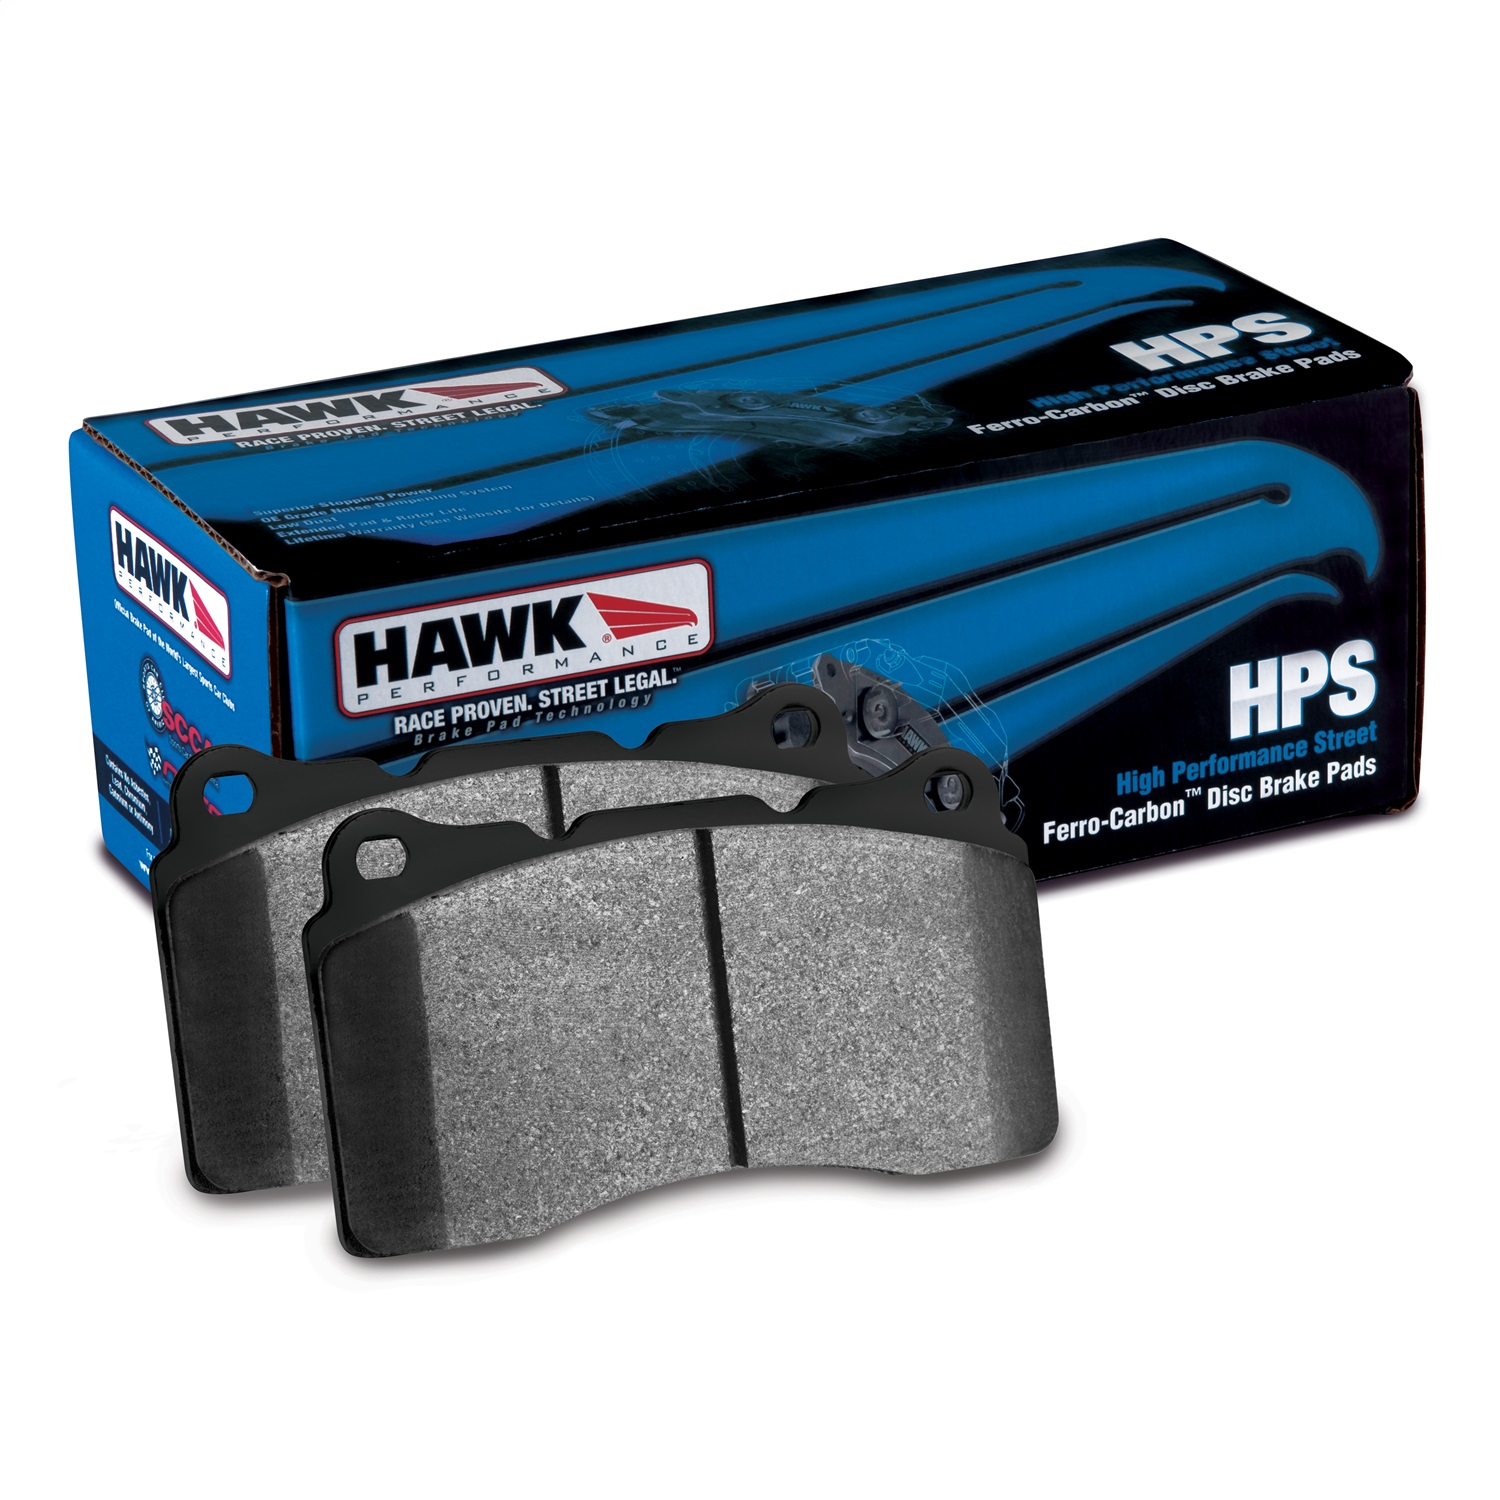 Hawk 06-08 Lexus IS250 HPS Street Front Brake Pads